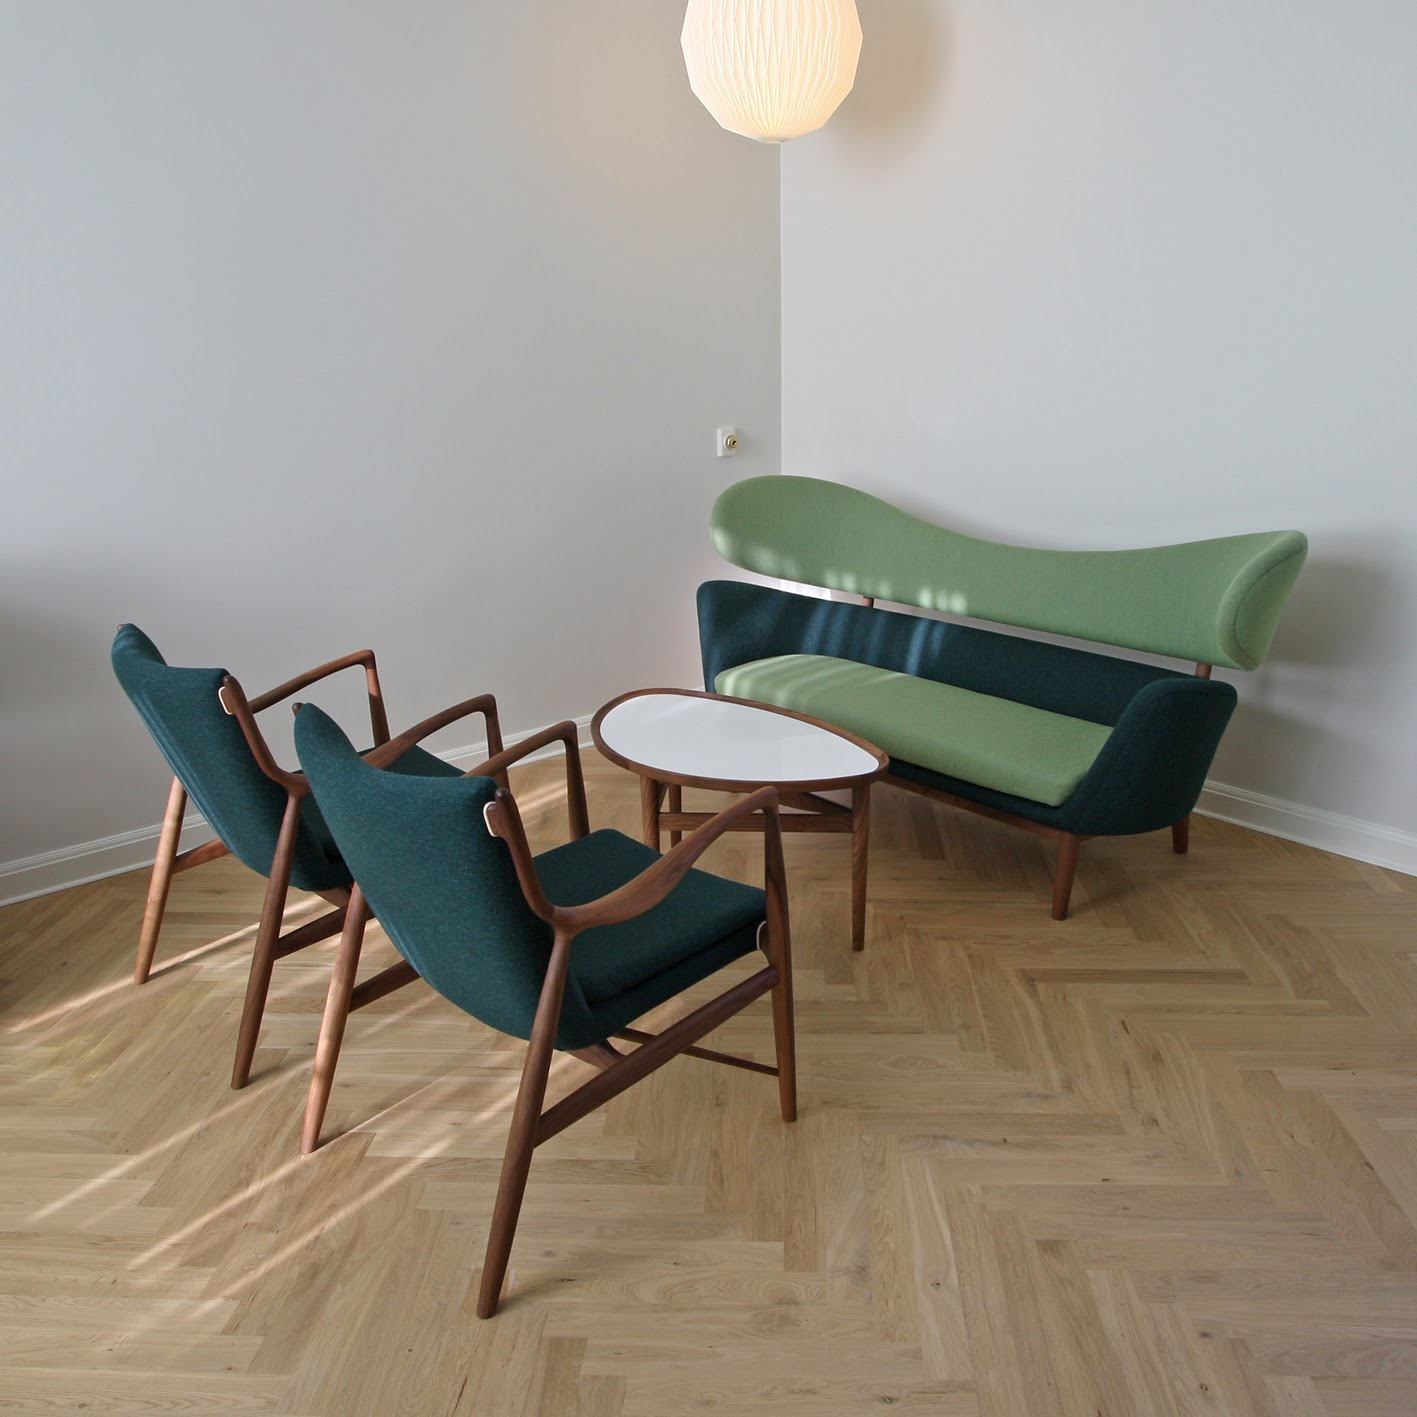 Finn juhl the baker sofa - Finn Juhl Who Is Regarded As The Father Of The Danish Design He Contributed To Introduce In The Usa When He Became World Famous After He Designed The